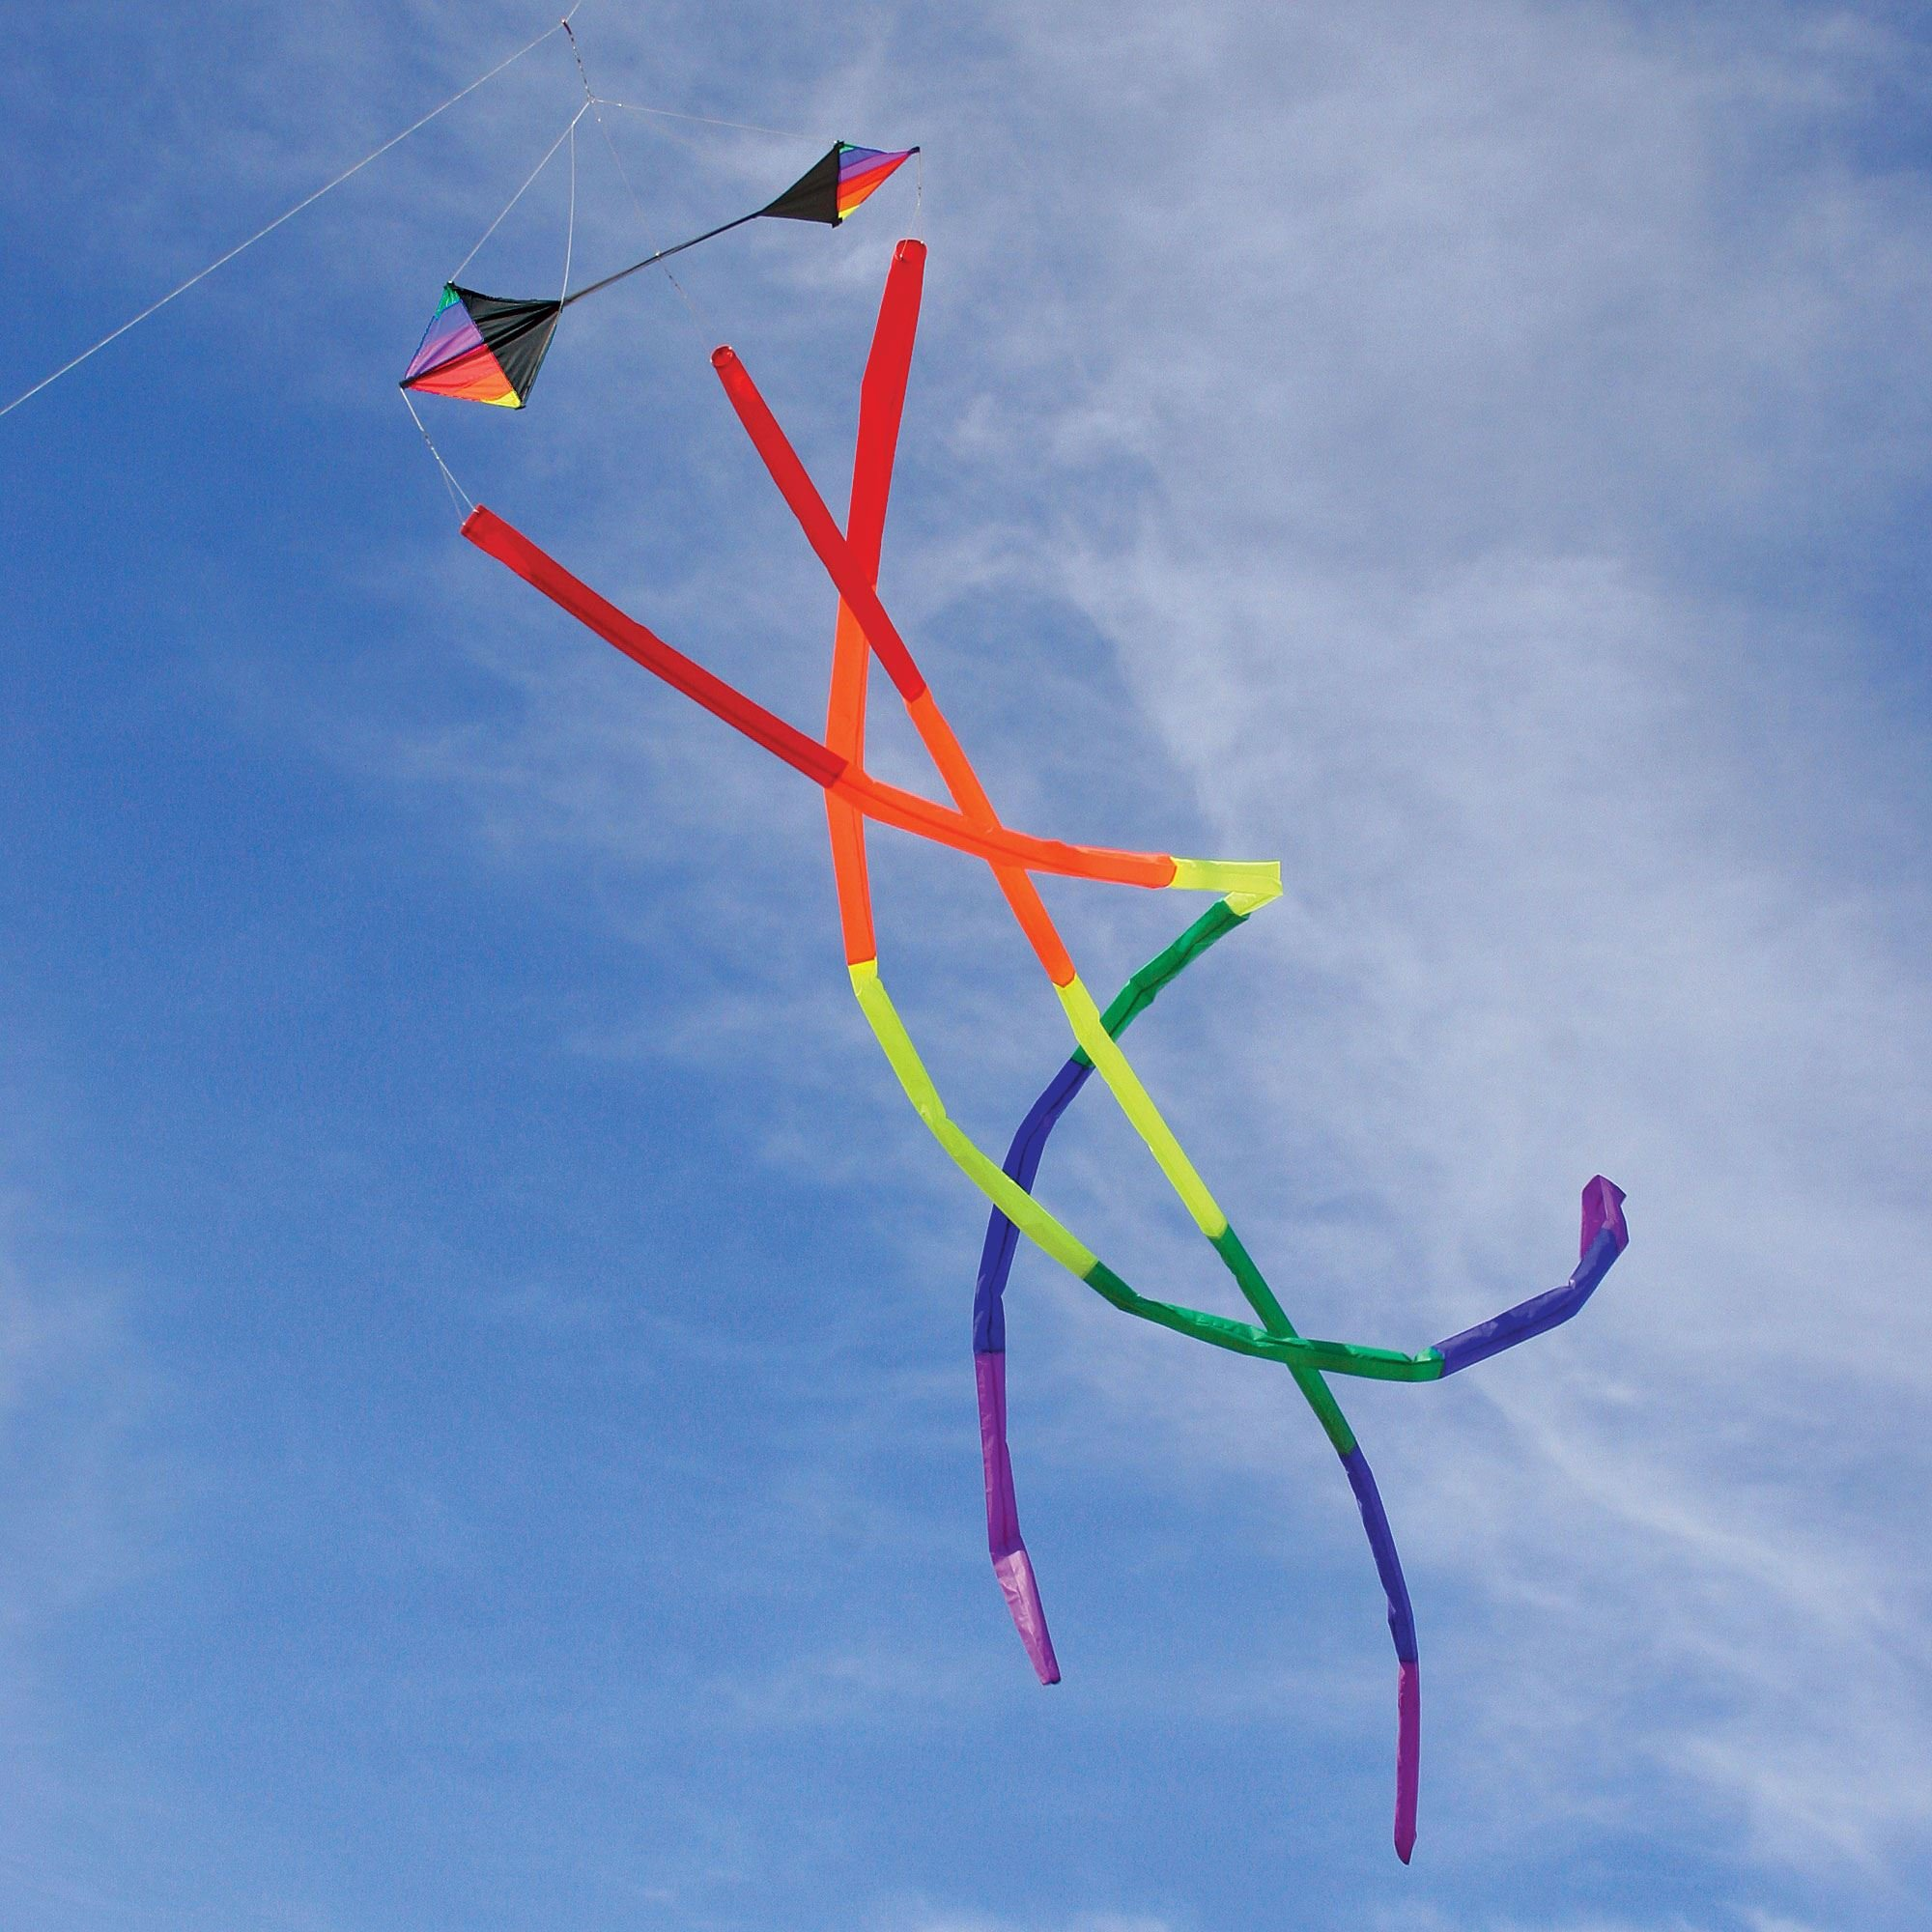 Helix Kite Tail by Gomberg Kite Productions